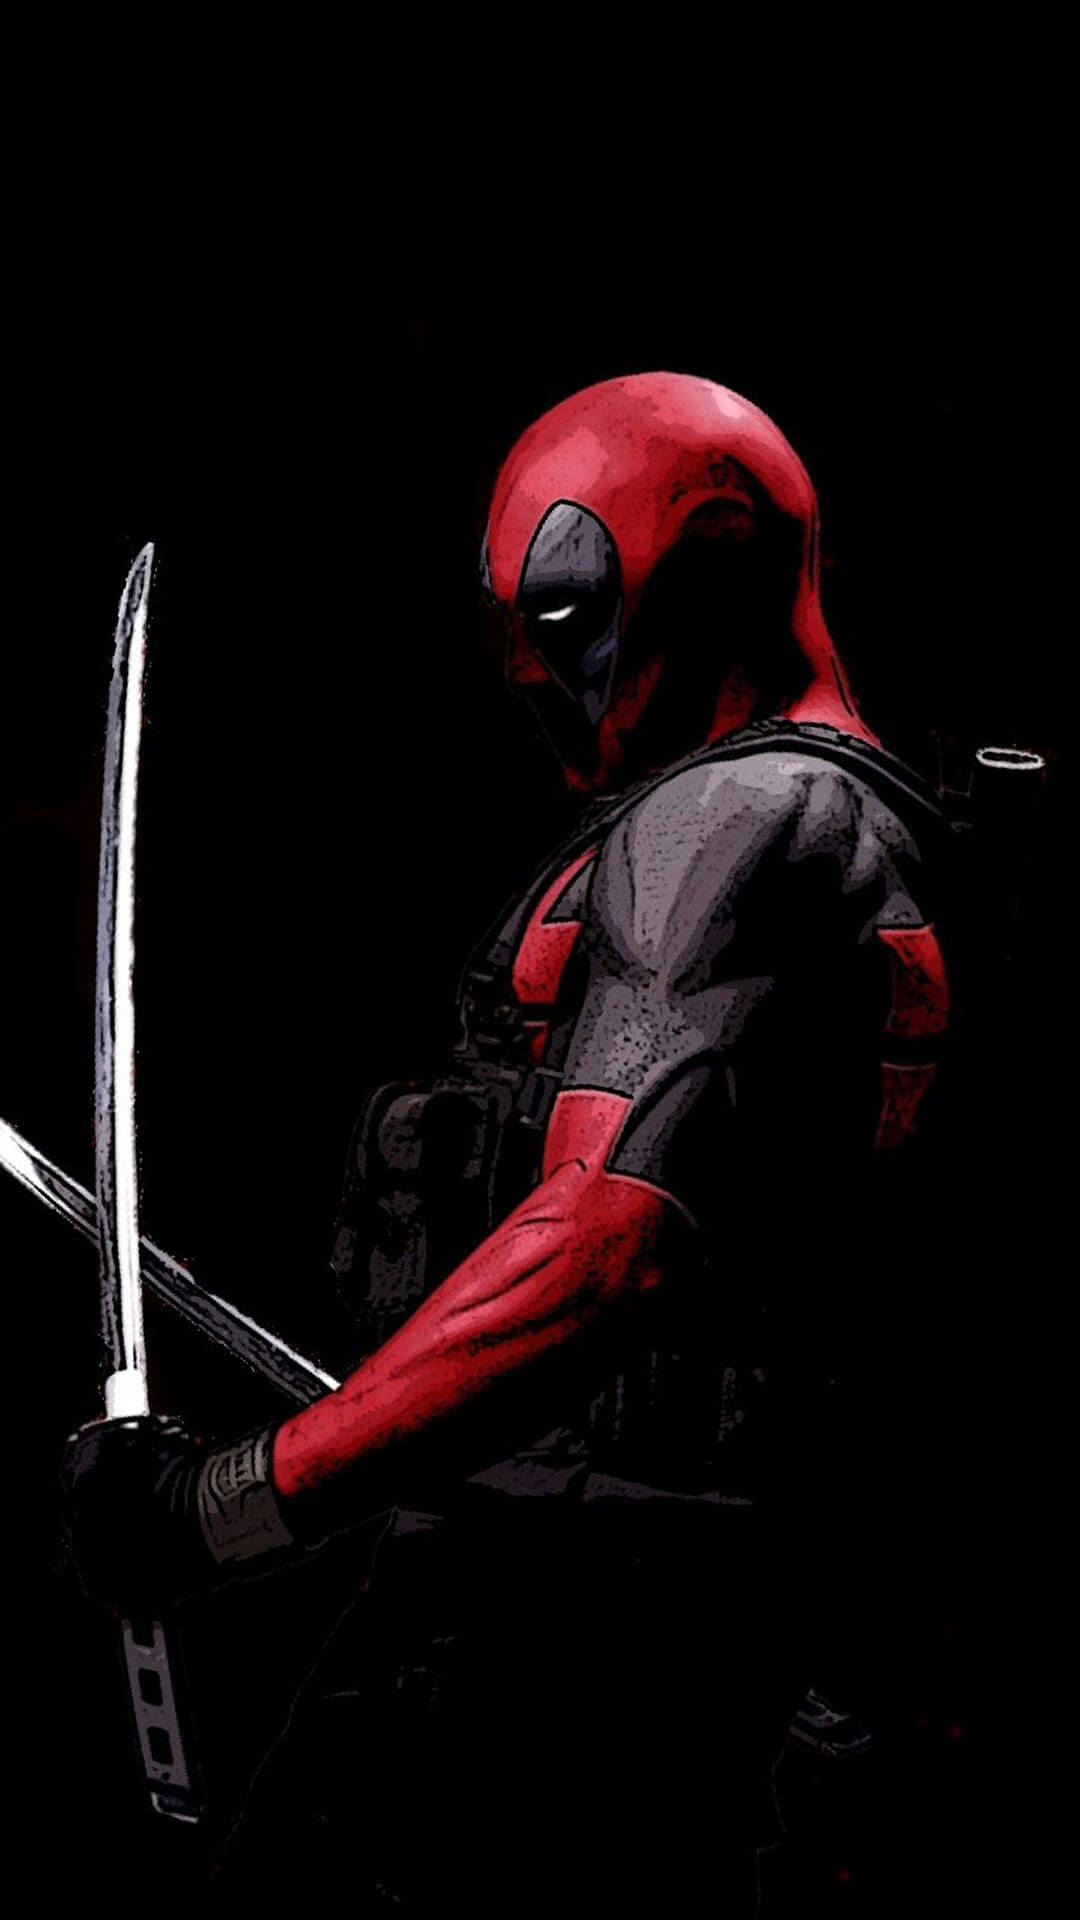 Hd wallpaper iphone 5 - Deadpool Movie Iphone Wallpaper Iphone 5 Iphone 6 Iphone 6s And